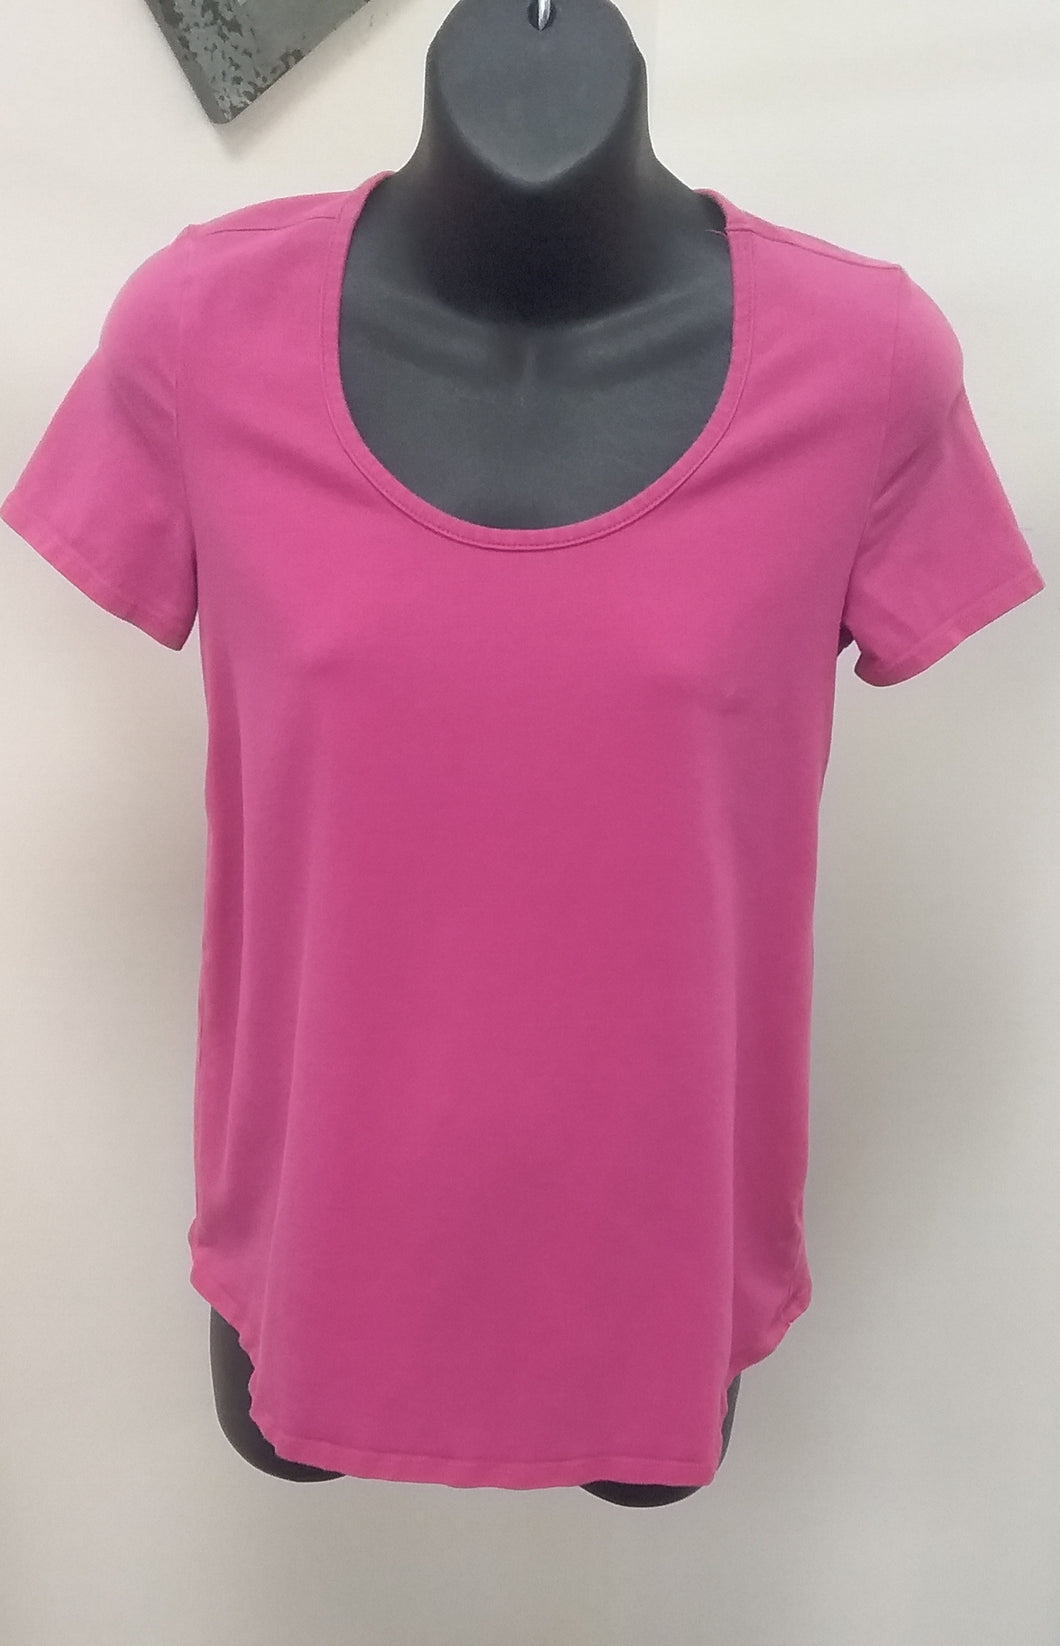 Small Cap Sleeve Pink Maternity Tee